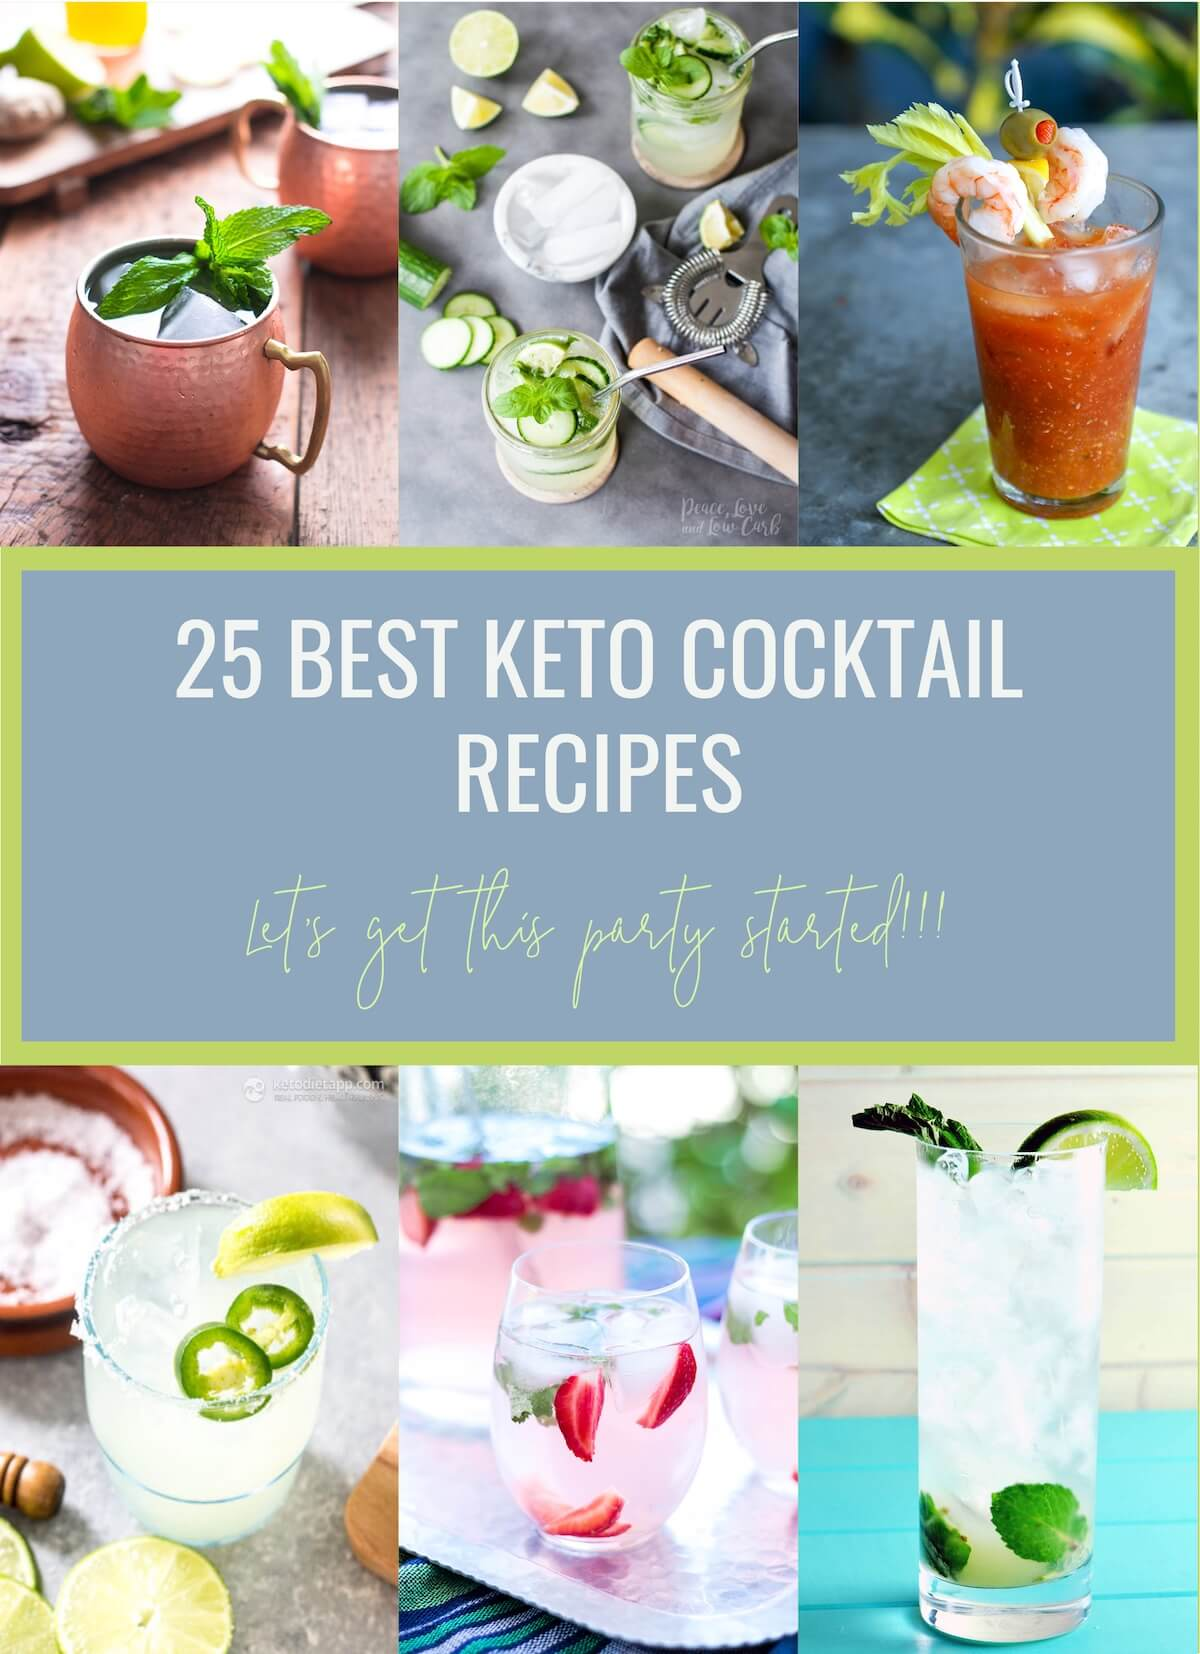 25 Best Ideas About Vintage Tarot Cards On Pinterest: 25 Best Keto Cocktail Recipes - Low Carb